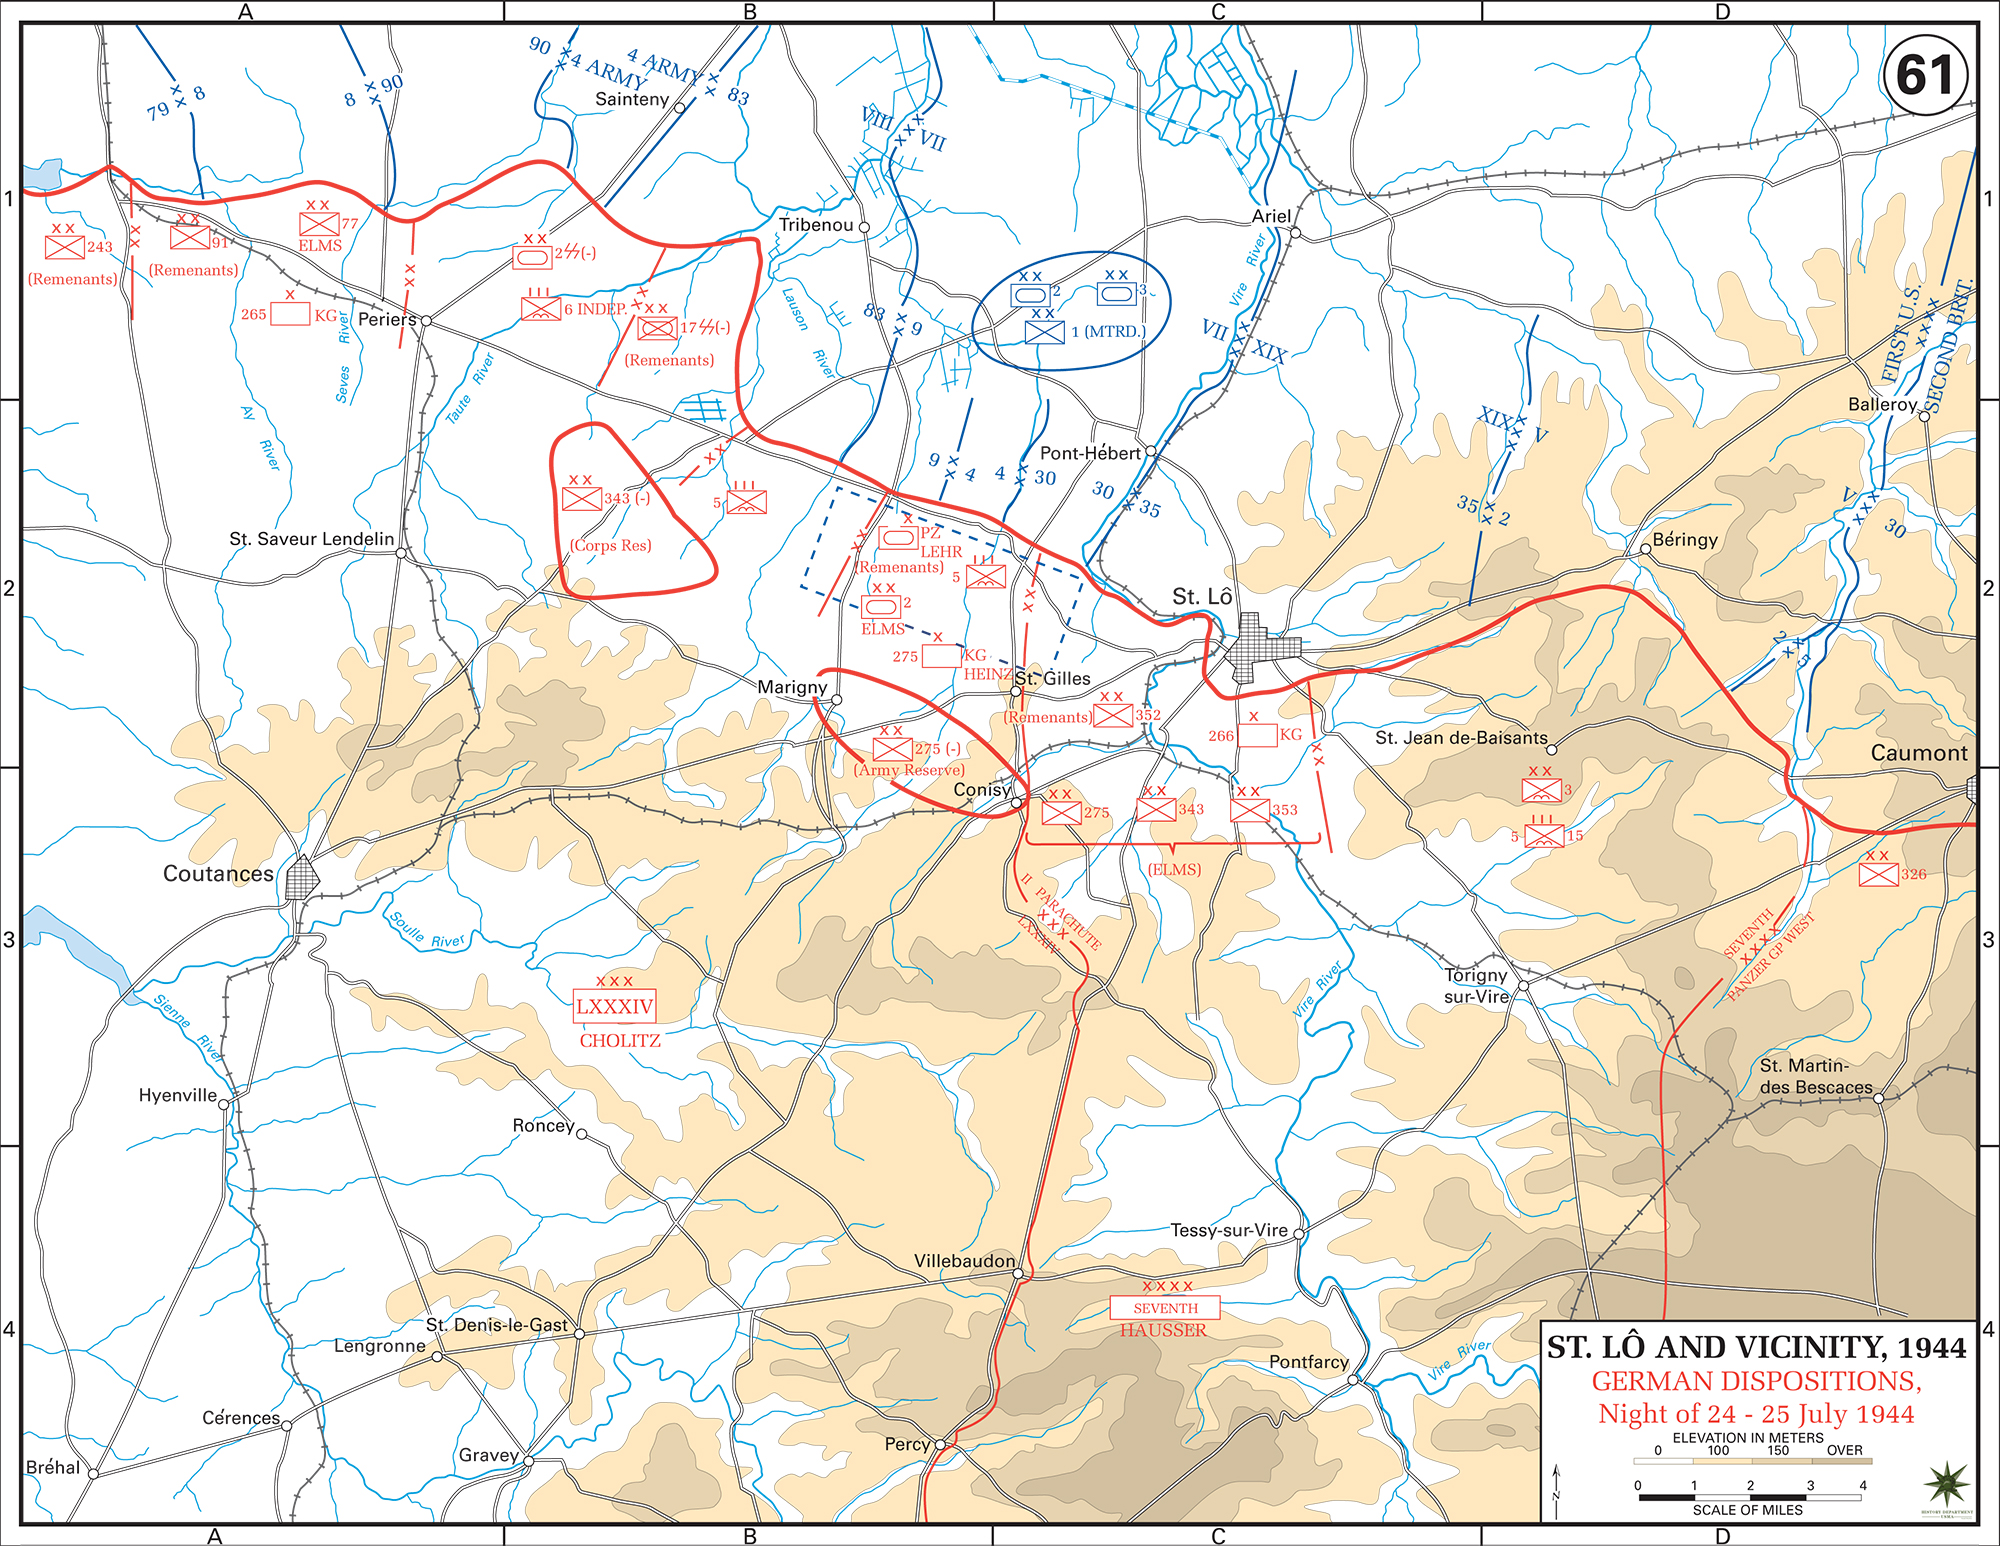 Map of WWII: Normandy Invasion. Saint-Lô (St. Lo) and Vicinity. German Dispositions at the Night of 24/25 July 1944.